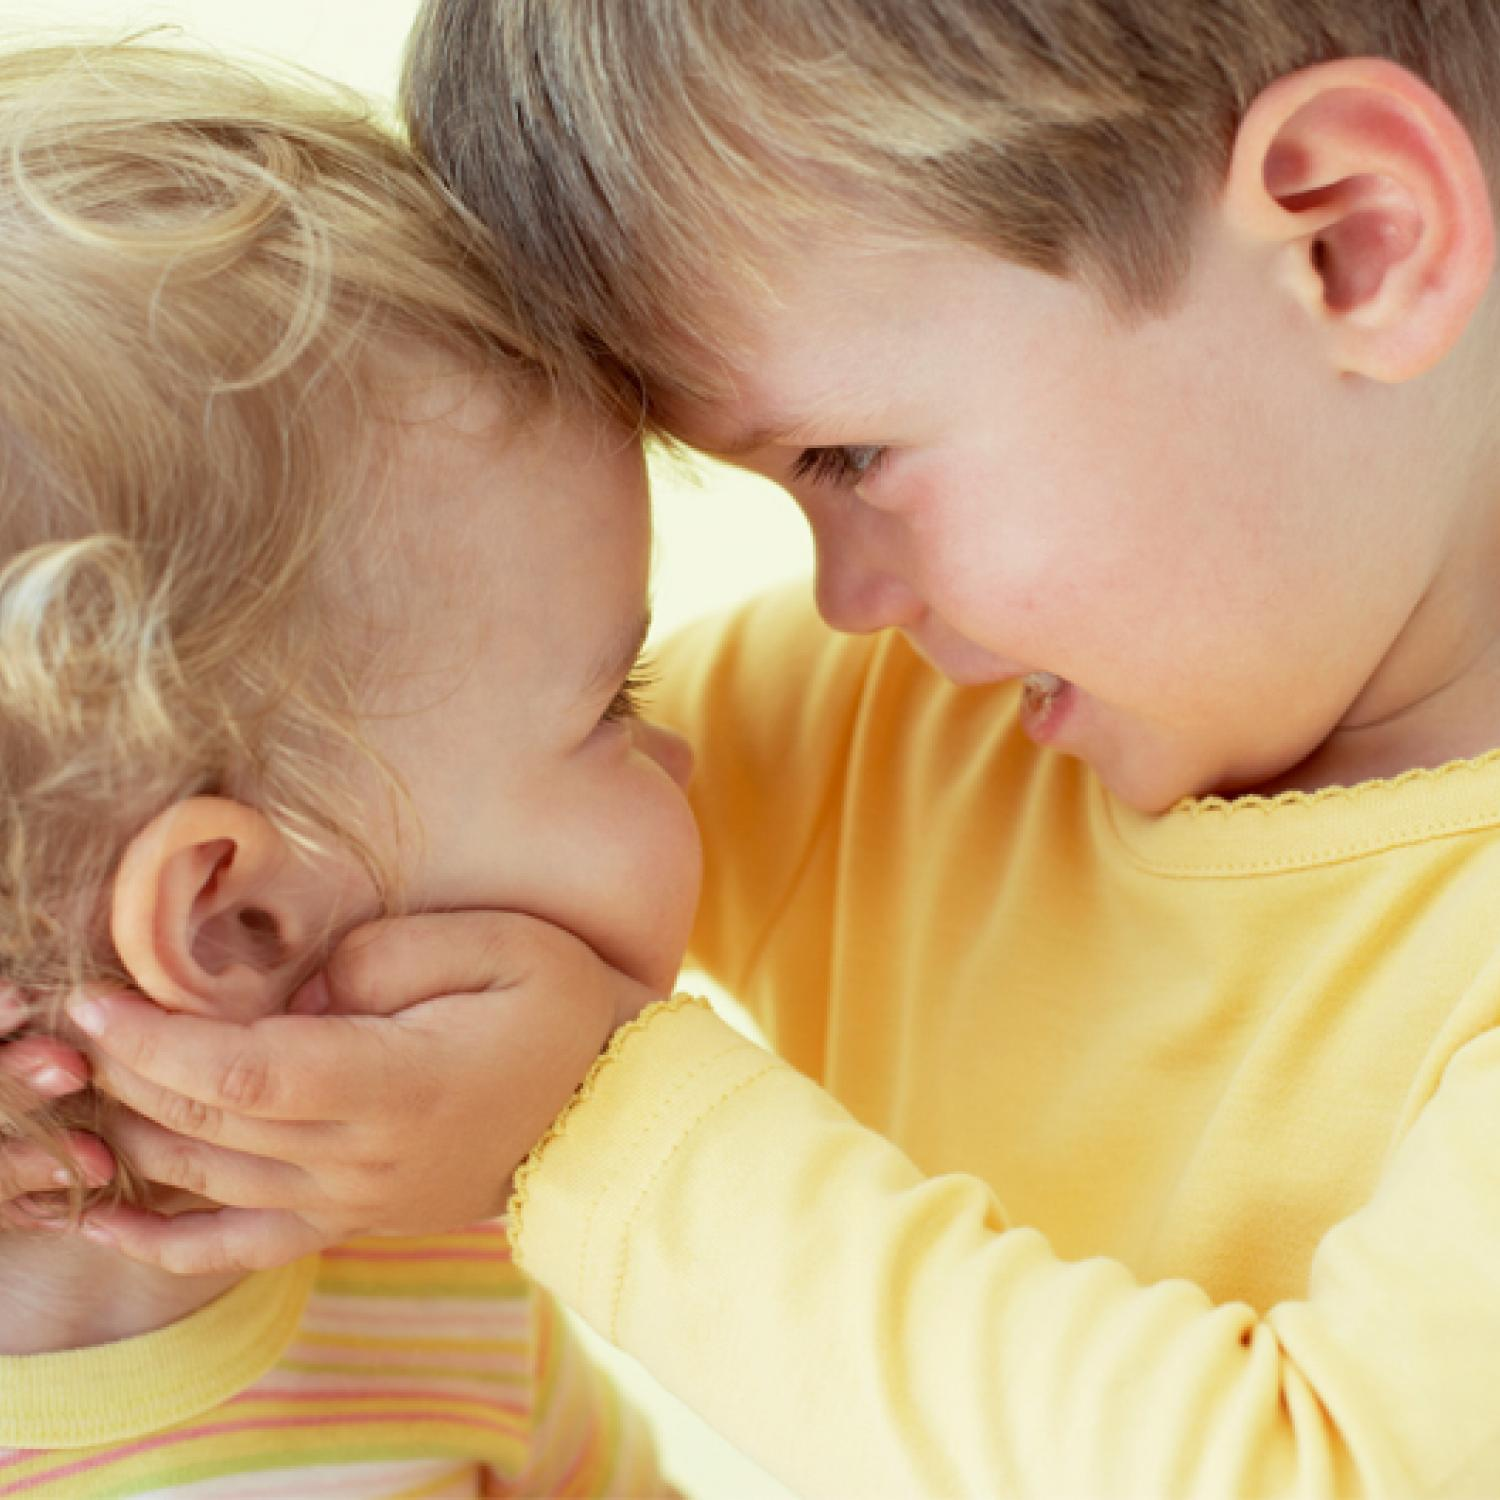 The dangers of child jealousy, and methods of dealing with it